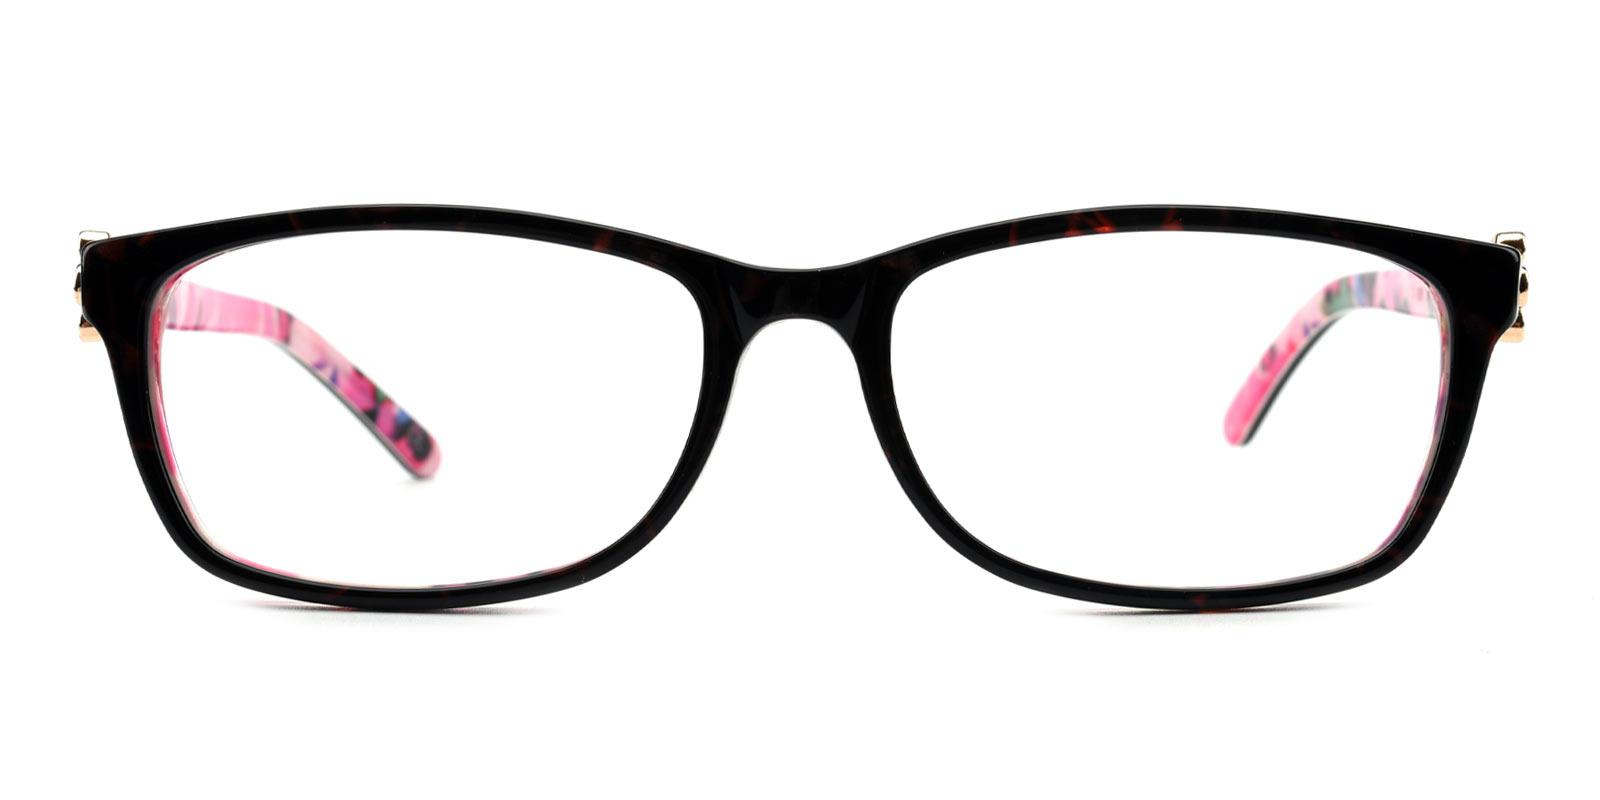 Rosemary-Pink-Rectangle-TR-Eyeglasses-additional2